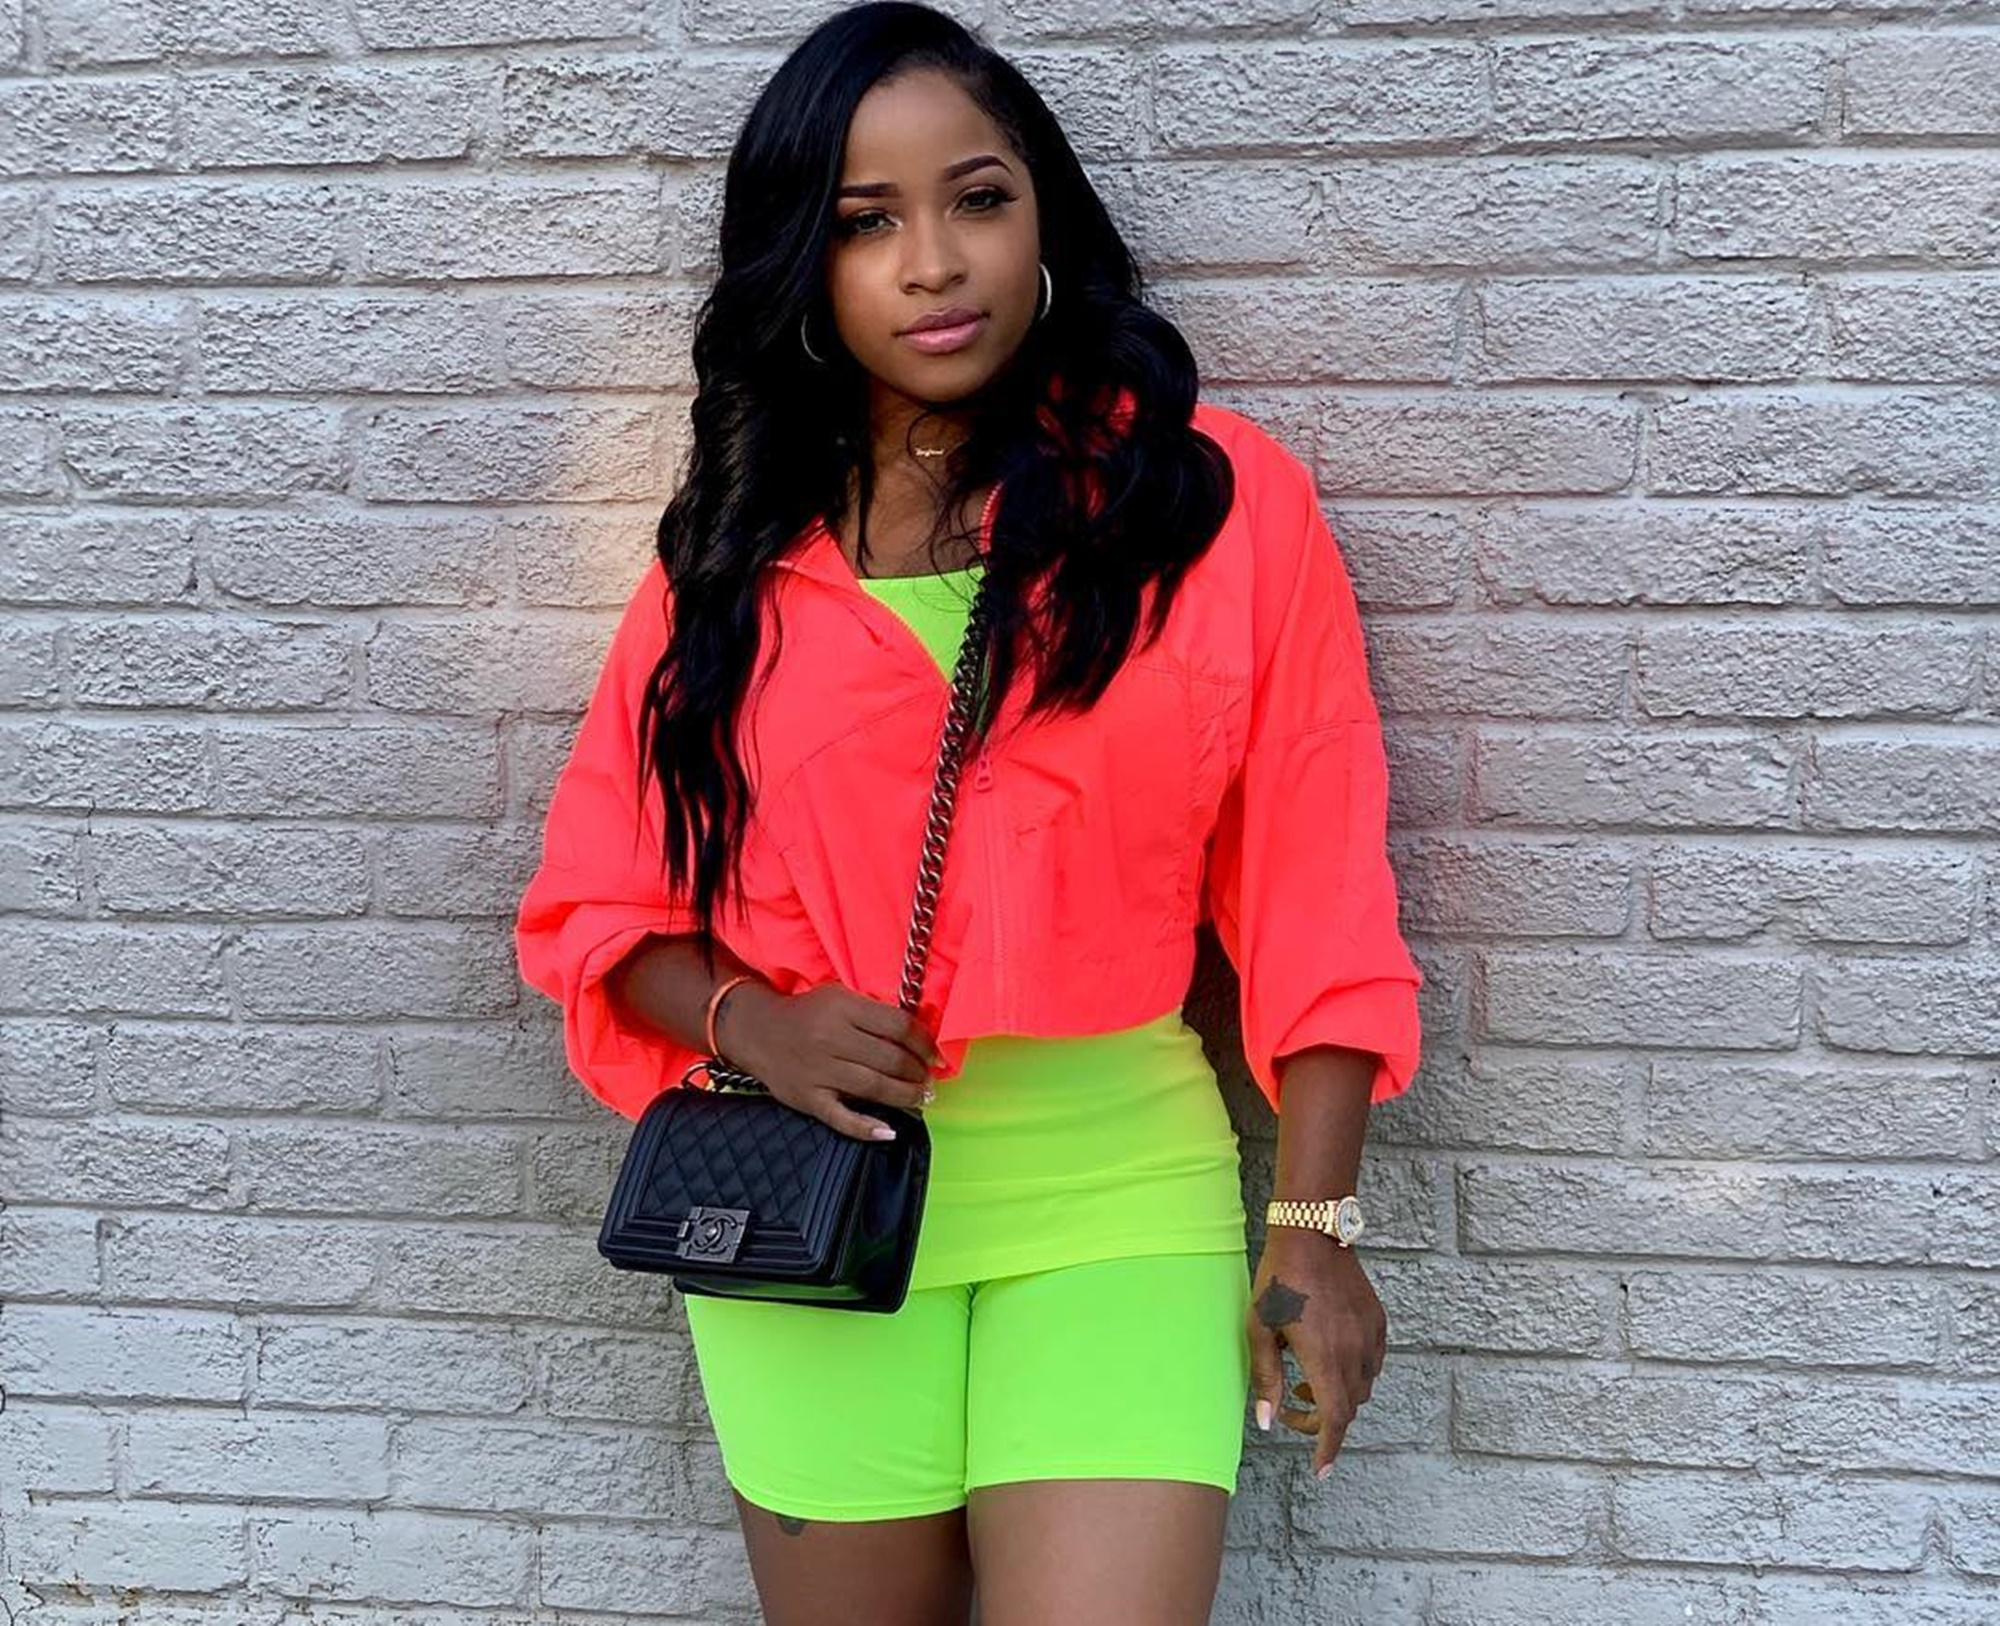 toya-wright-tries-to-look-amazing-in-neon-bathing-suit-picture-but-lil-waynes-exs-feet-irk-fans